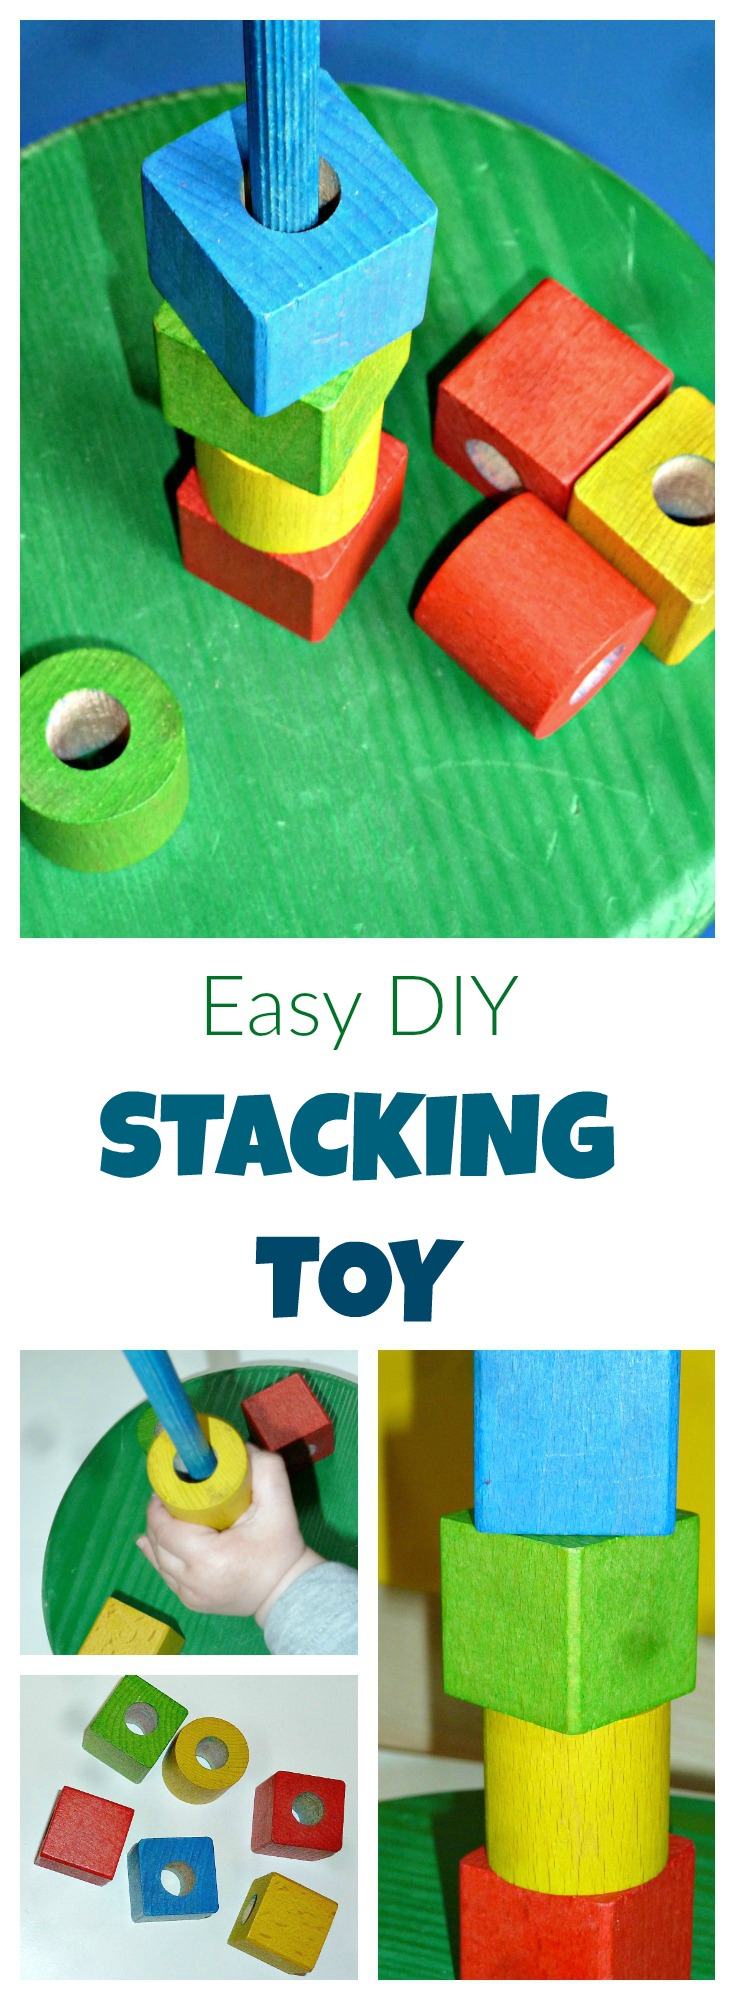 make a colorful homemade wooden stacking toy for your child. It also makes an excellent DIY present for your friends' toddlers!